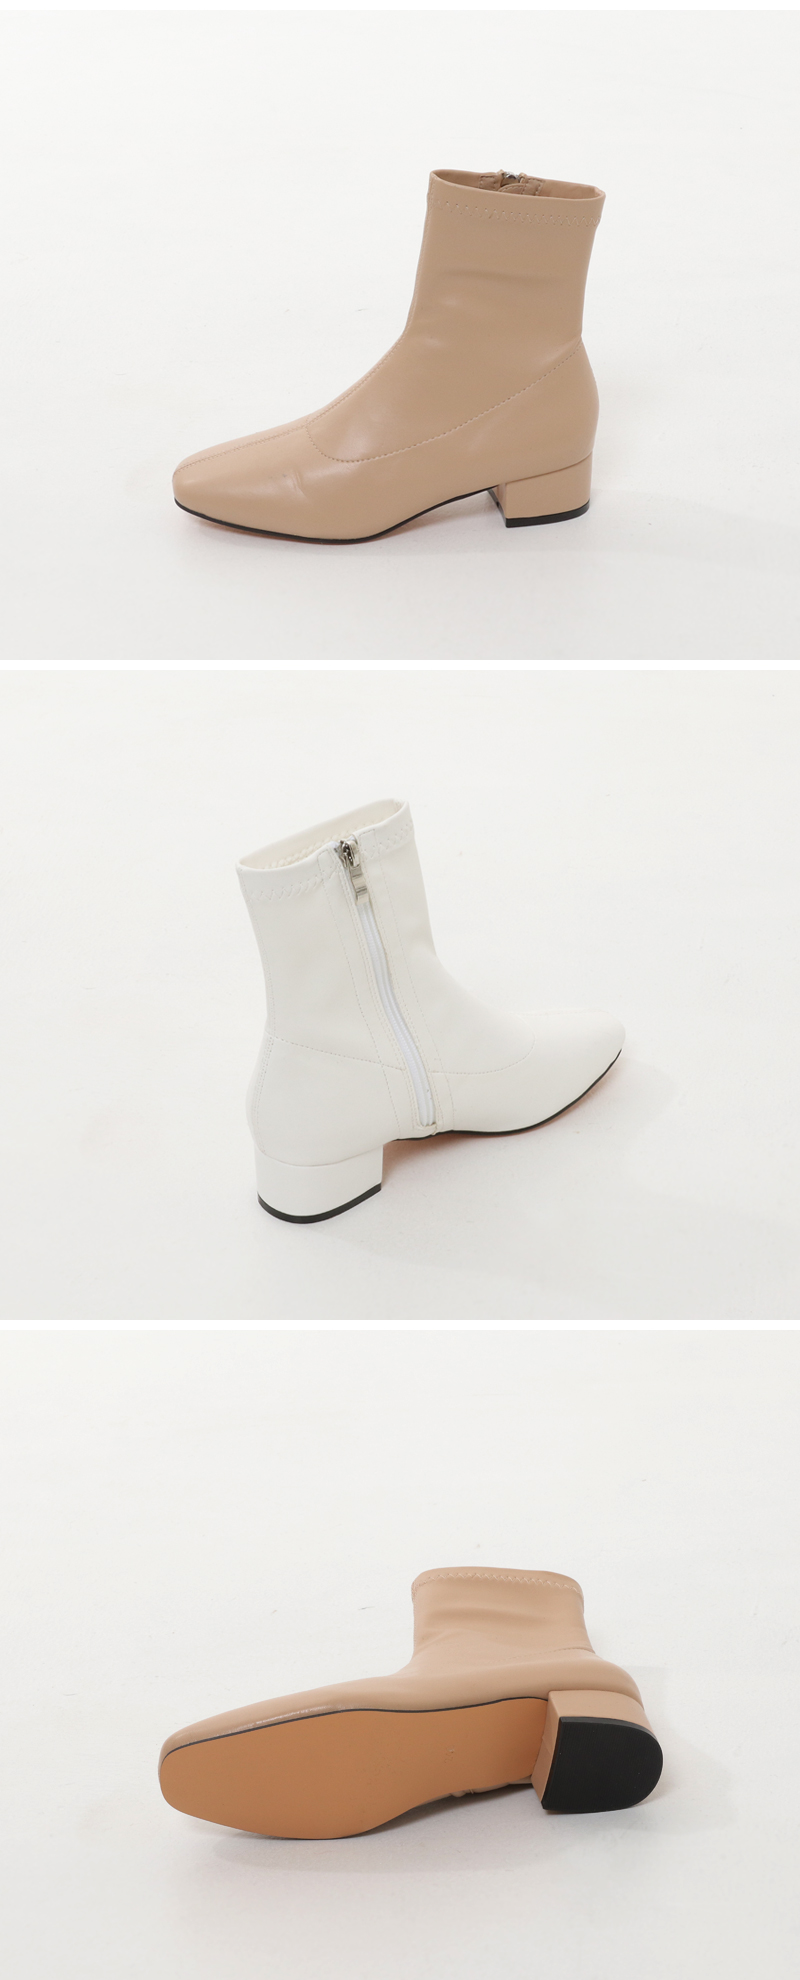 Most Middle Heel Ankle Boots